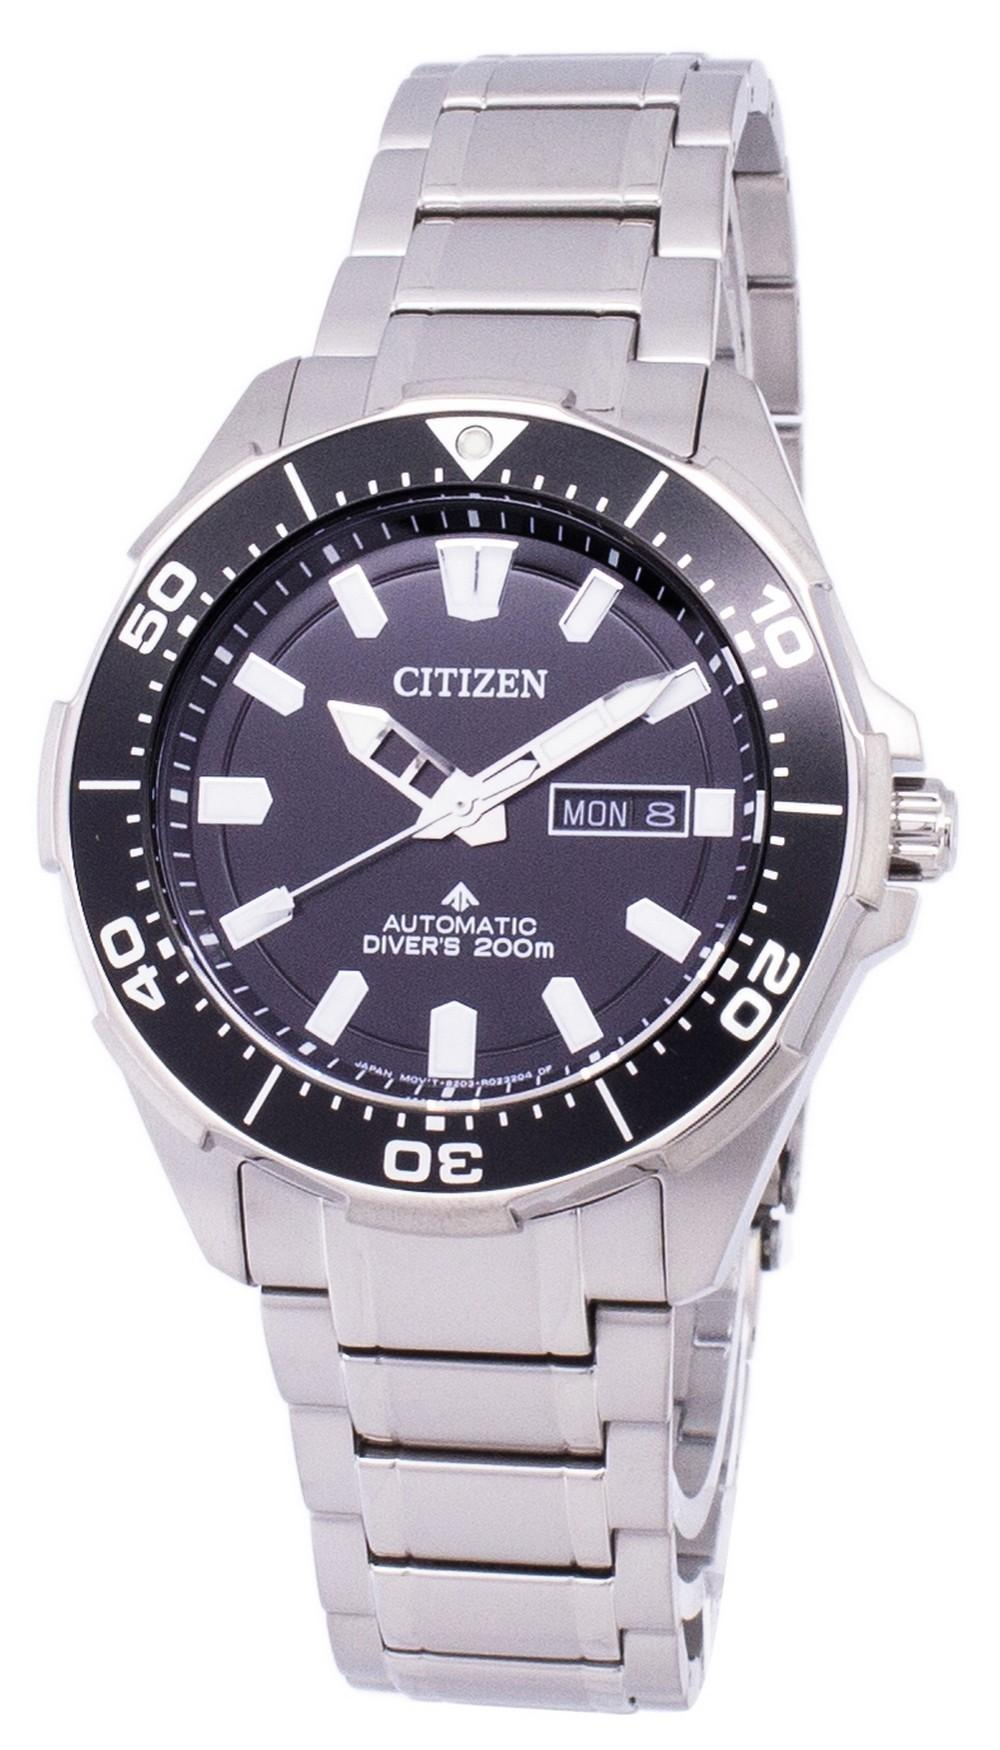 Citizen Promaster Marine Scuba Diver 200m Automatic Ny0070-83e Men's Watch